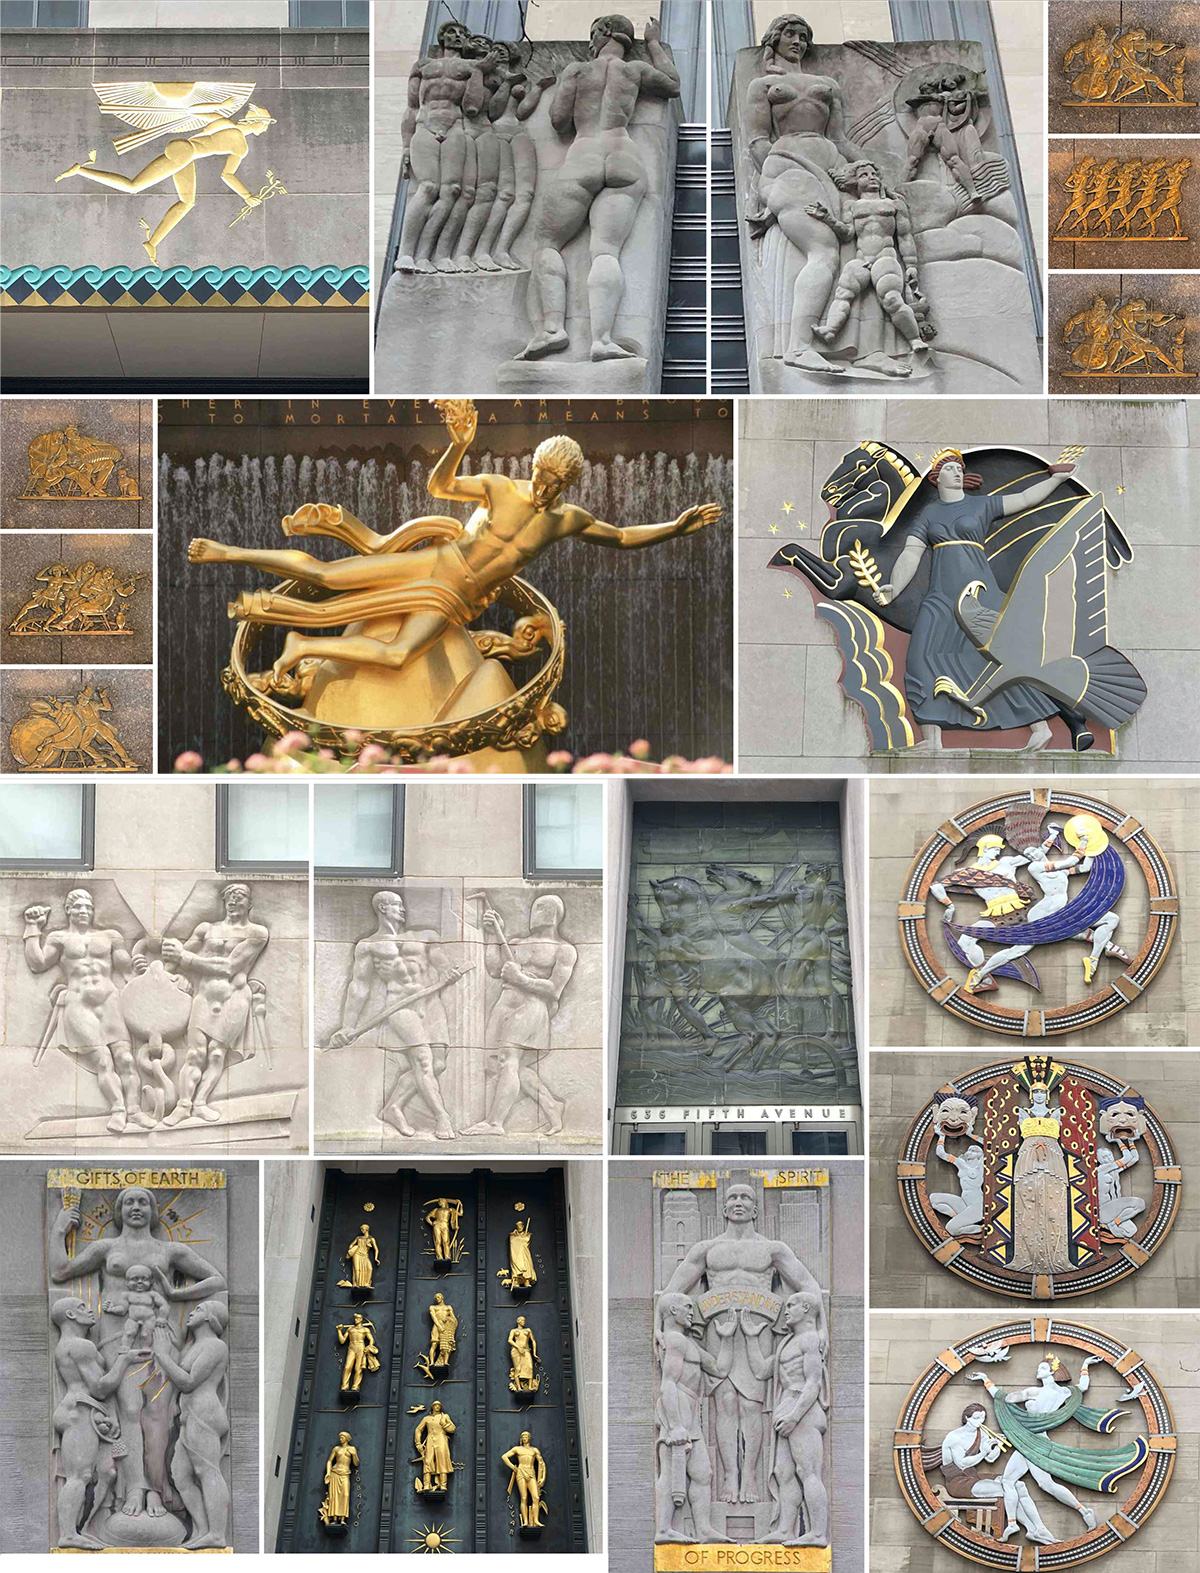 Collage of all existing artworks within Rockefeller Plaza to be affected by the proposed alterations - Gabellini Sheppard Associates